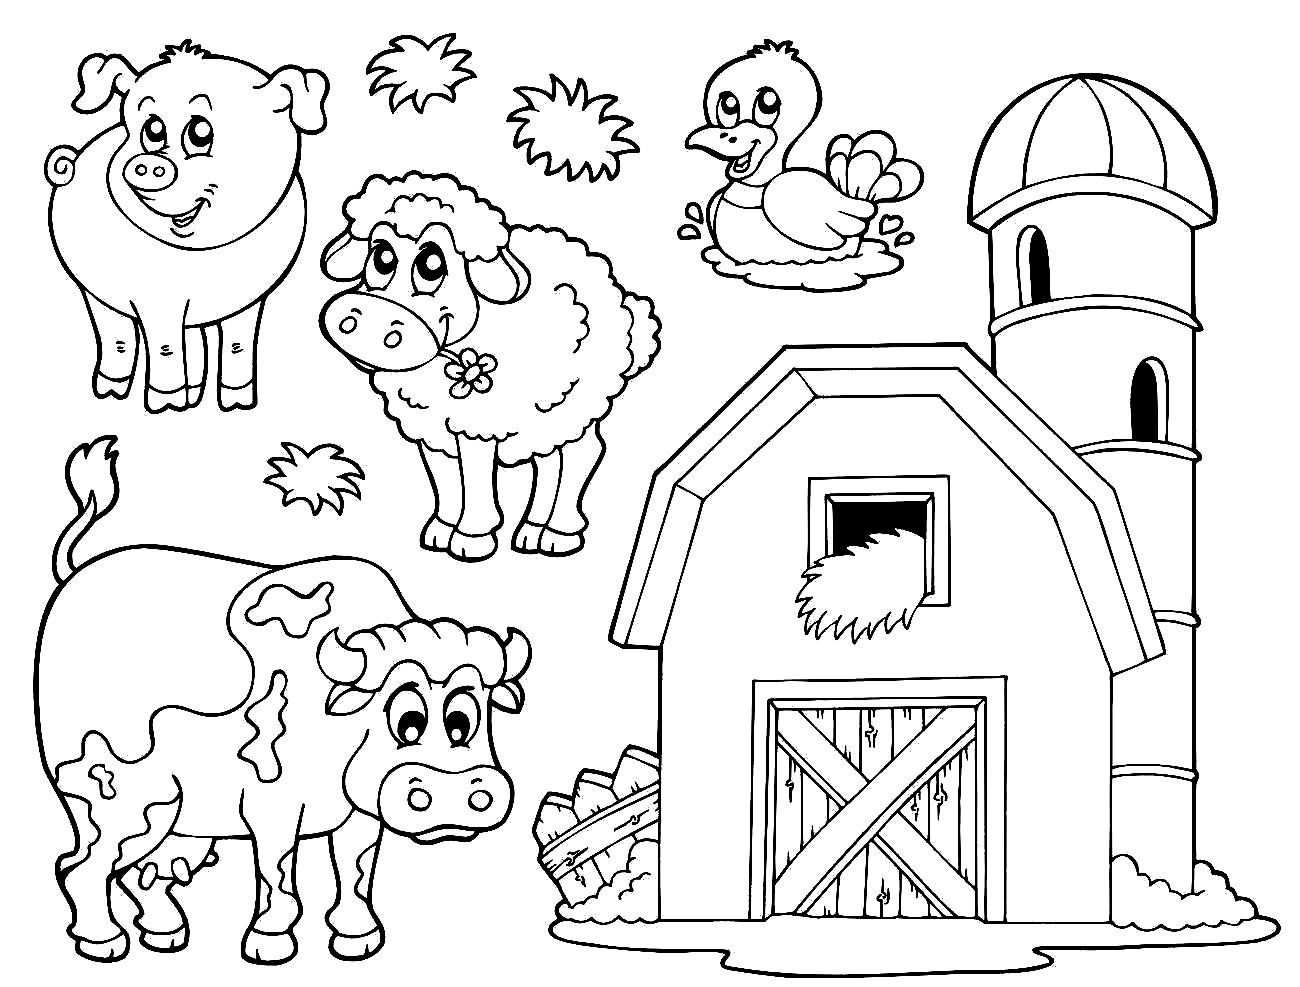 Printable Coloring Pages Of Farm Animals Farm Coloring Pages Farm Animal Coloring Pages Animal Coloring Pages